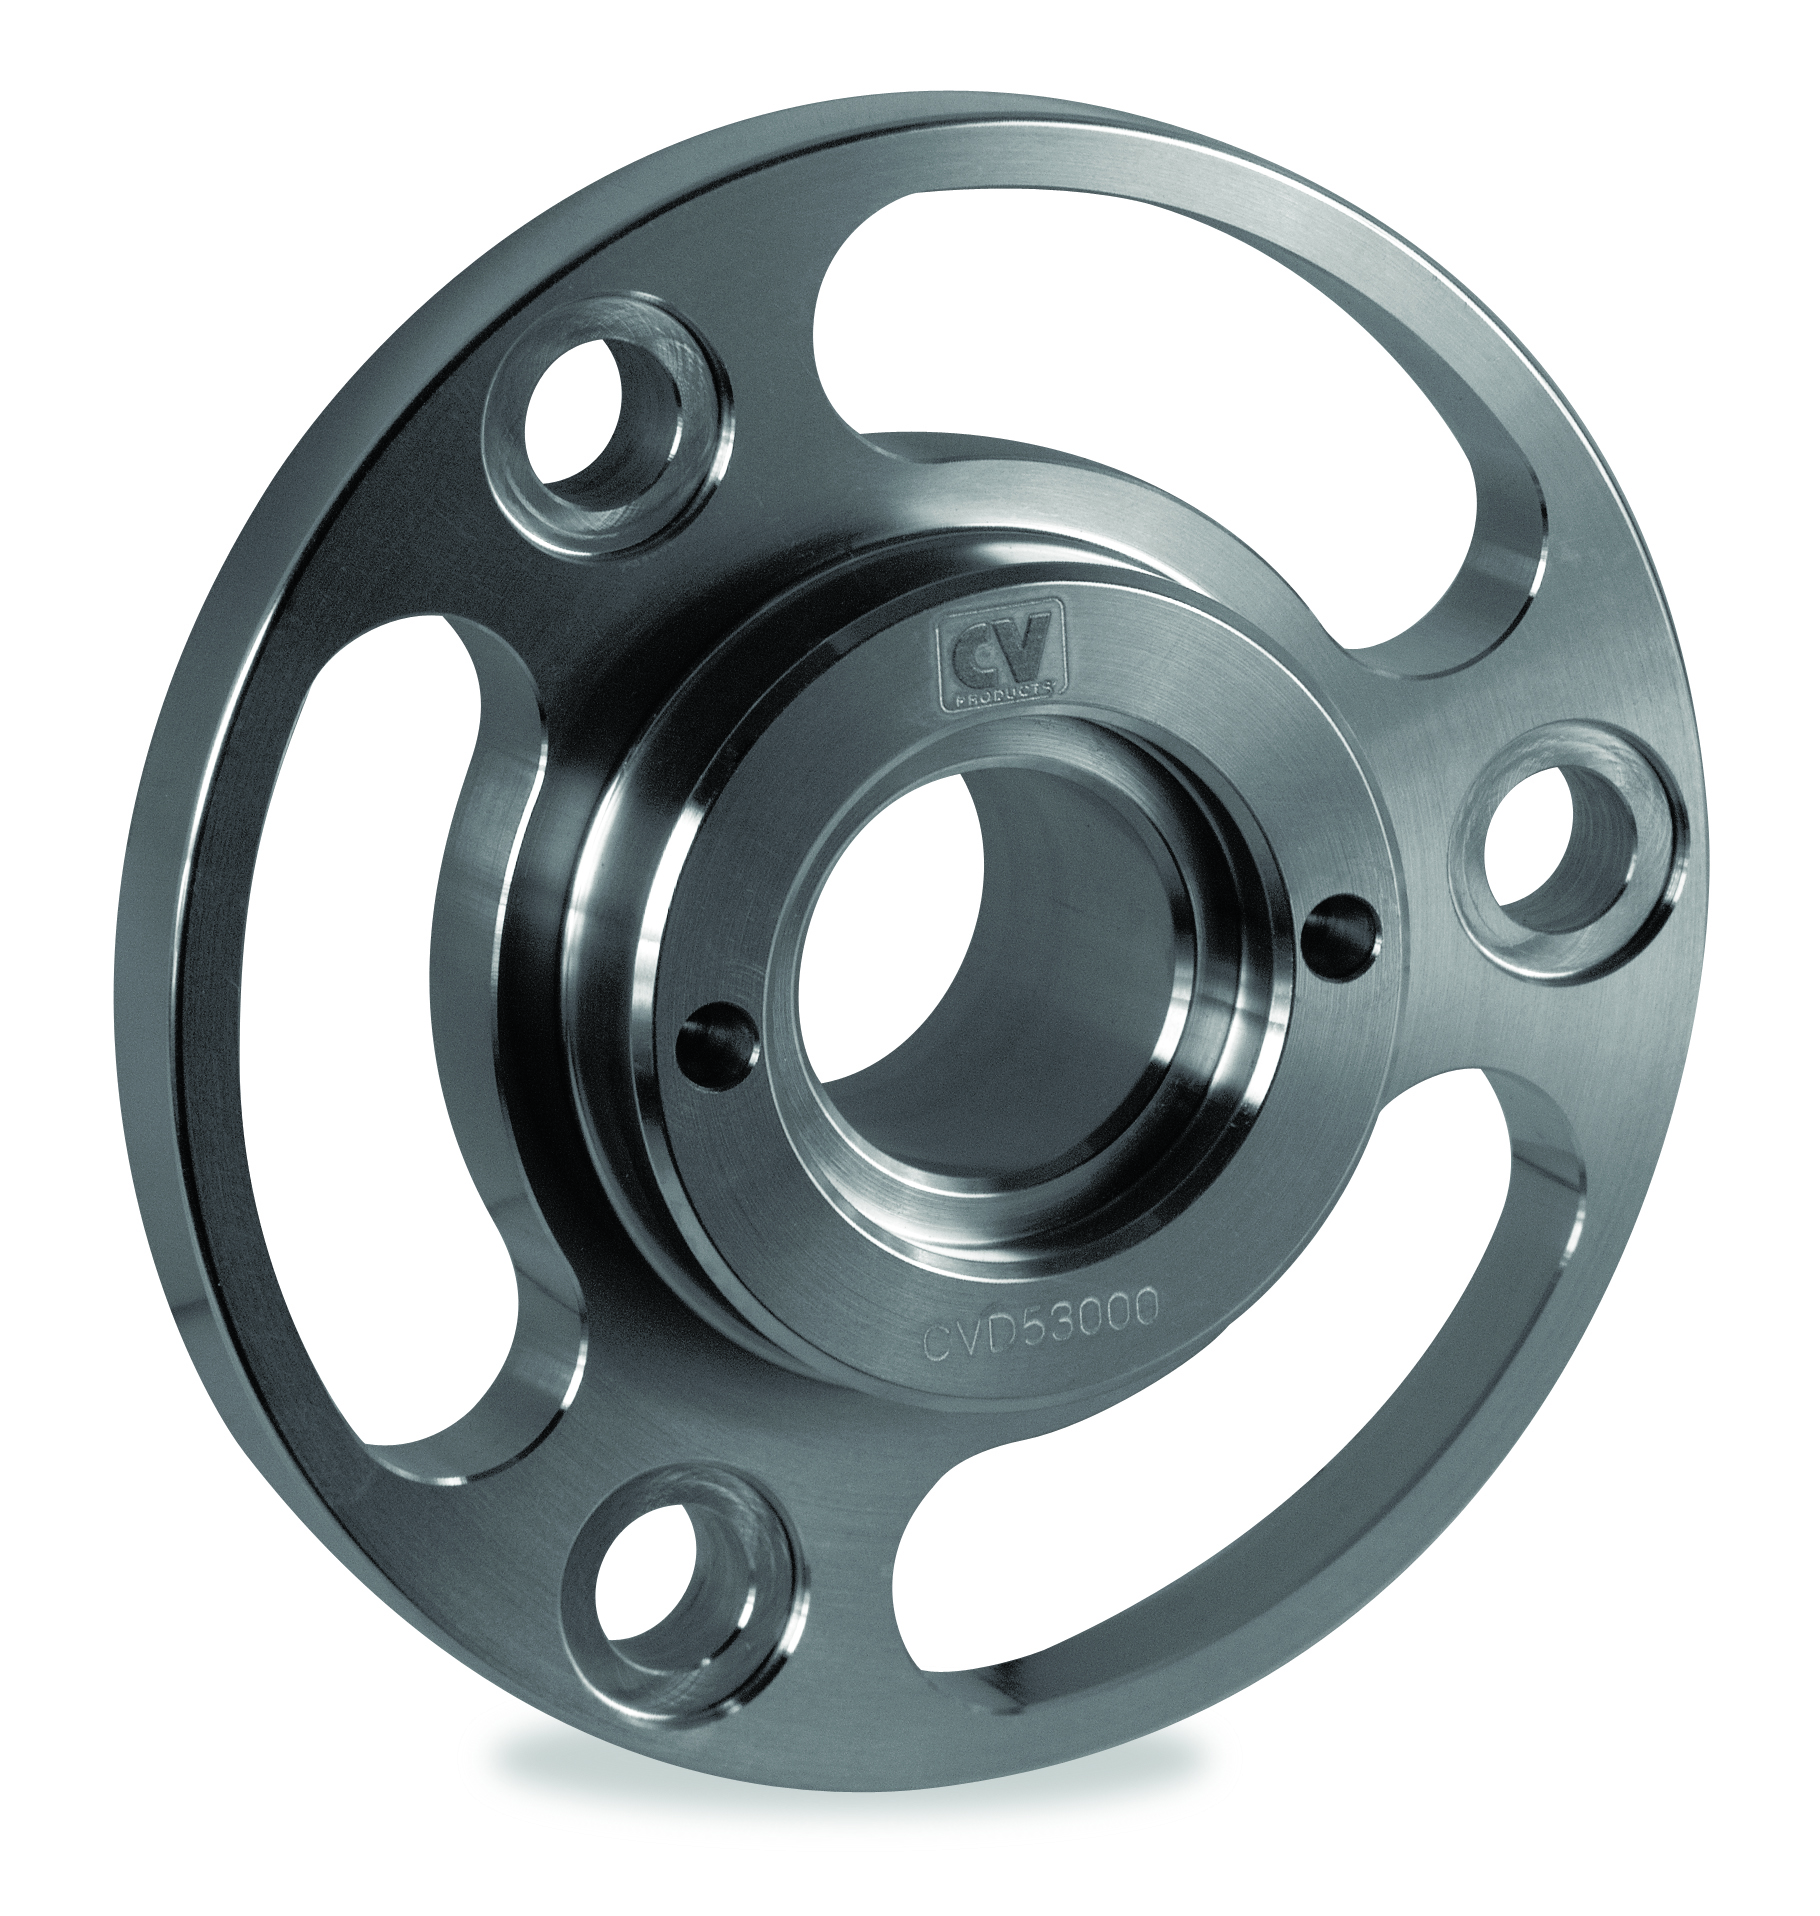 CV Products 53000 SBC BBC 3 Bolt Crank Trigger HUB Twin